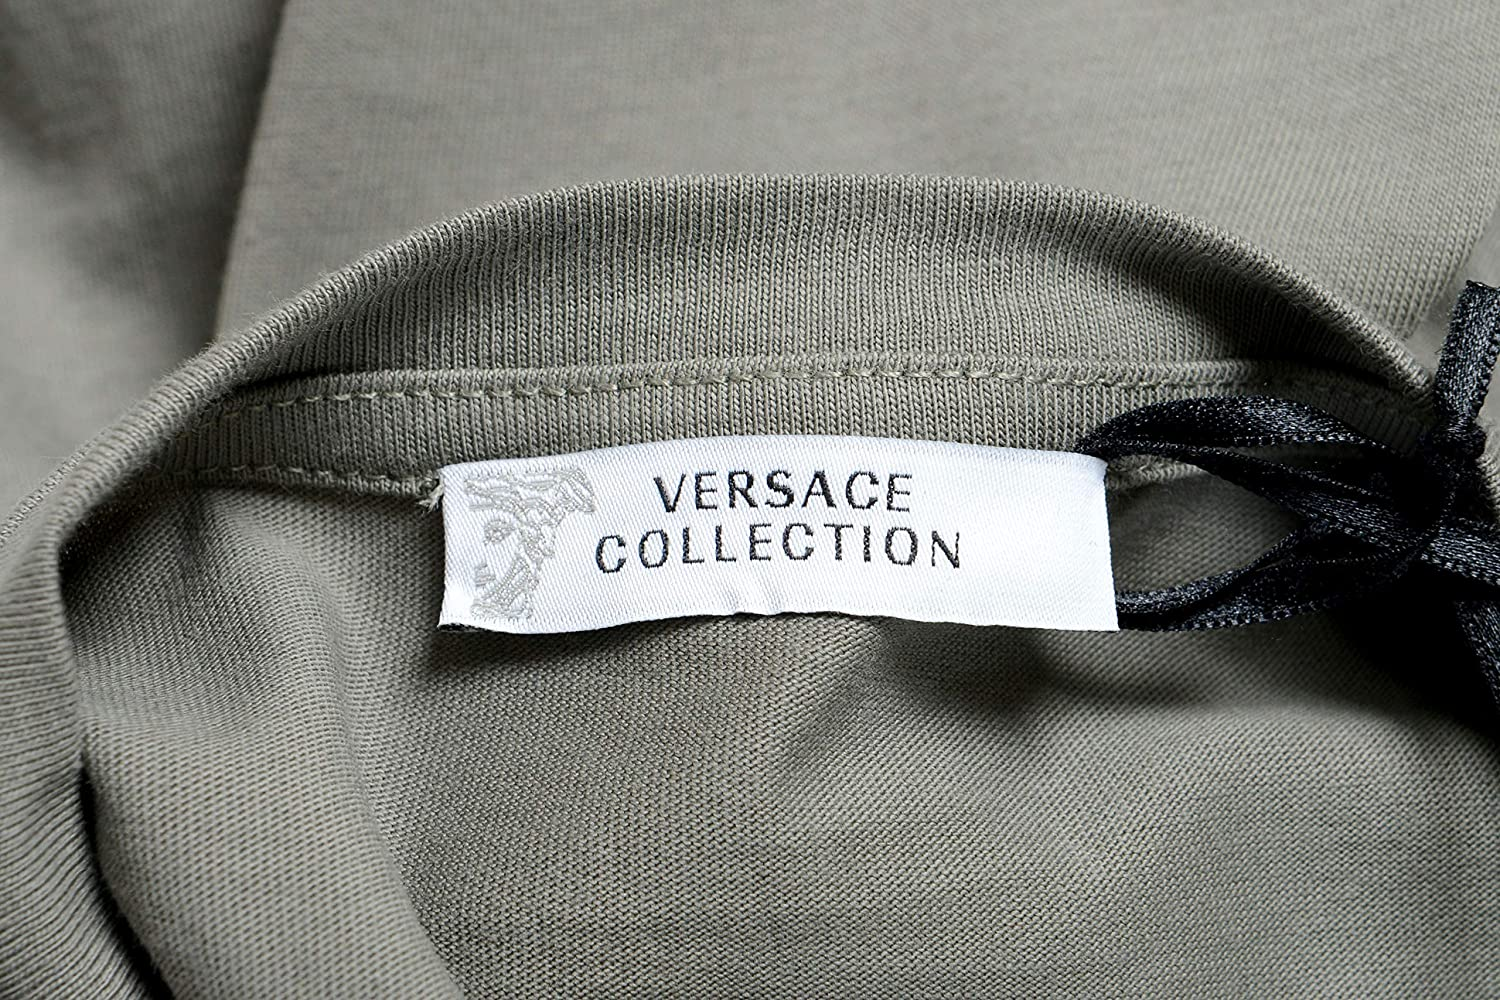 Versace Collection Mens Gray Graphic Crewneck T-Shirt Size US S IT 48